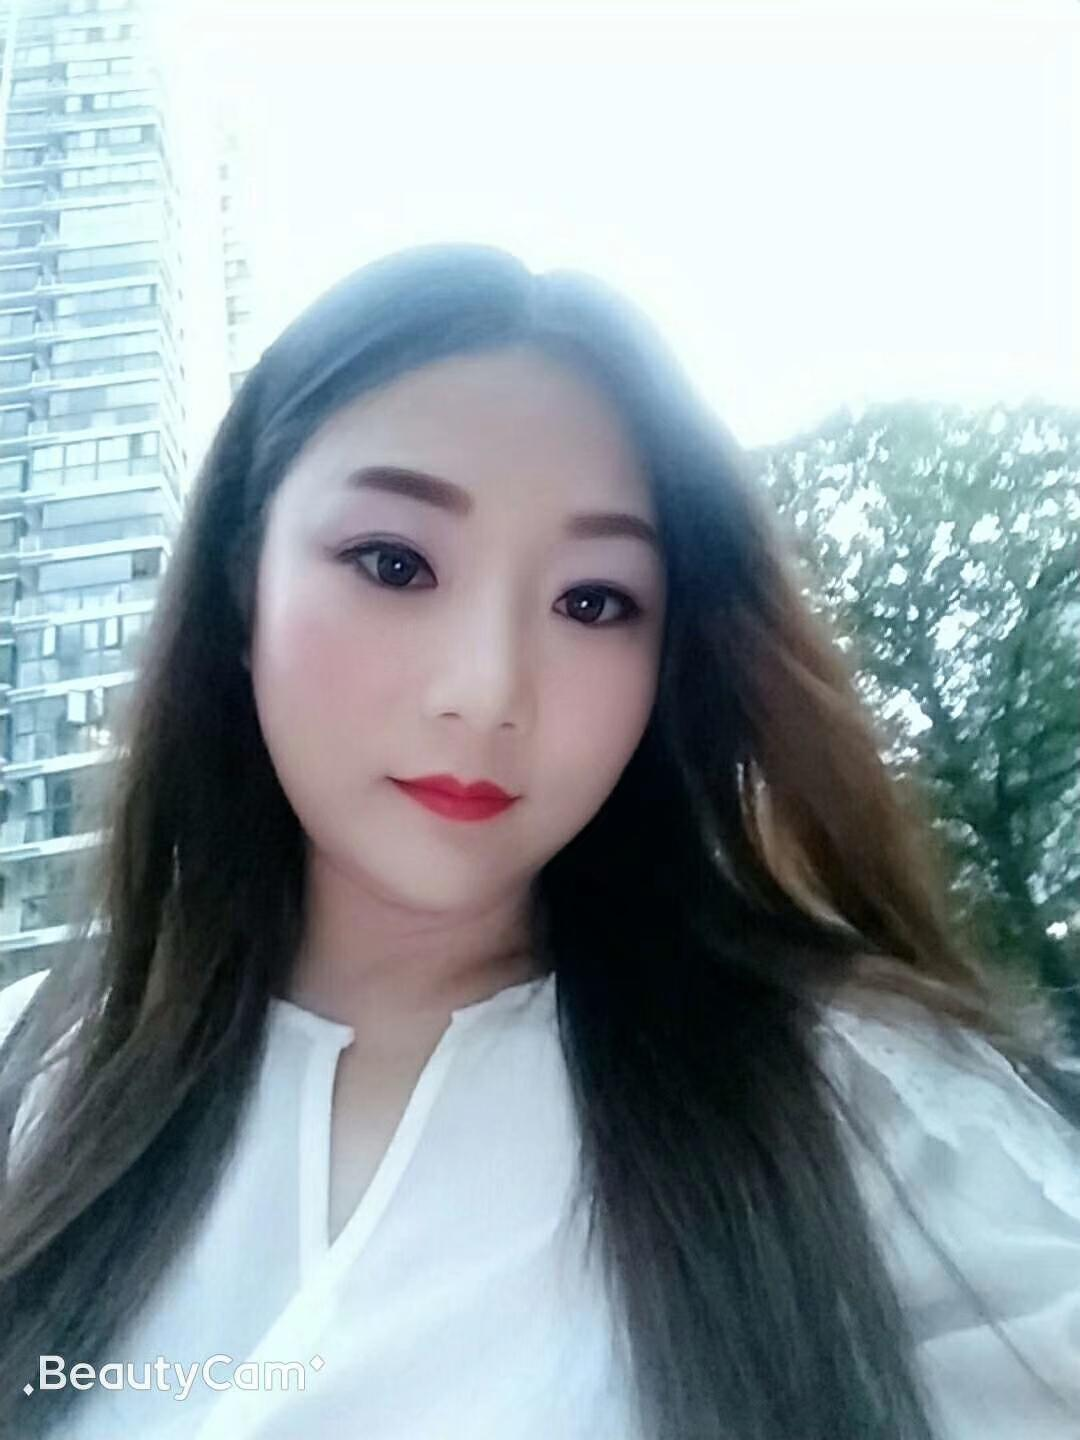 means wet tight spread asian teen pussy flexible me, please where can